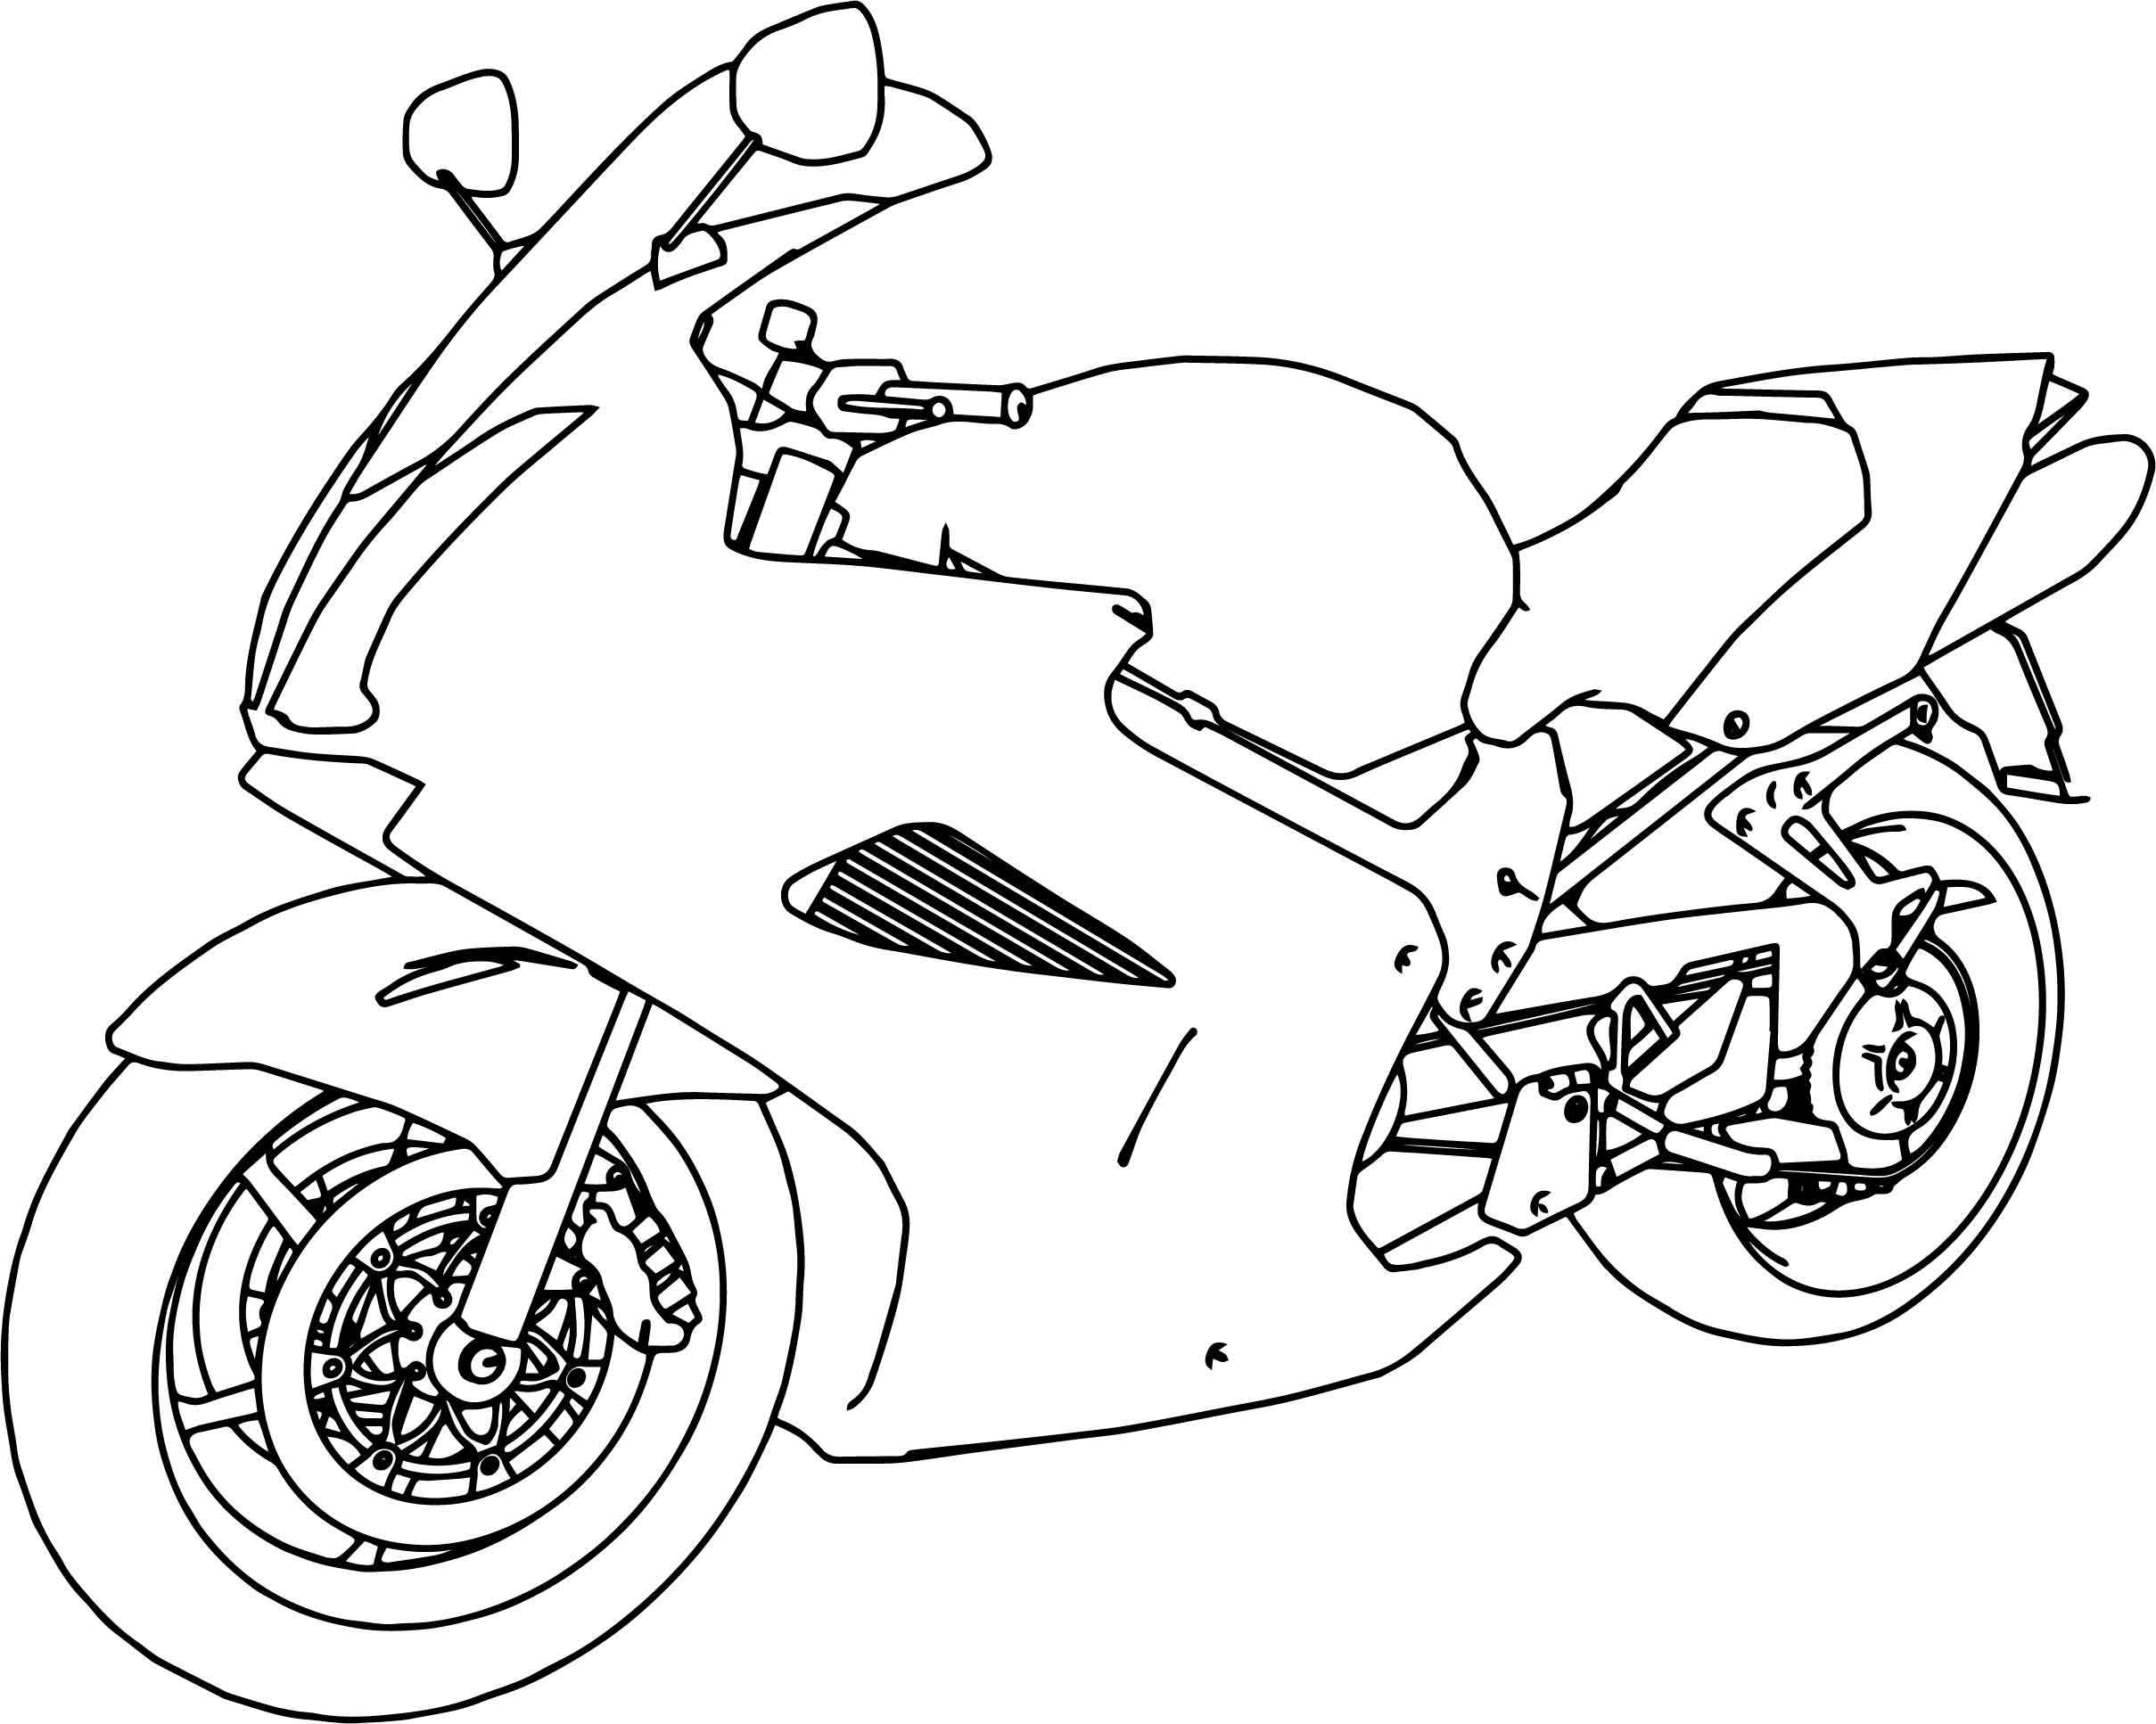 2418x1934 Appealing Bikes Honda Vfr Interceptor Motorcycle Coloring Page